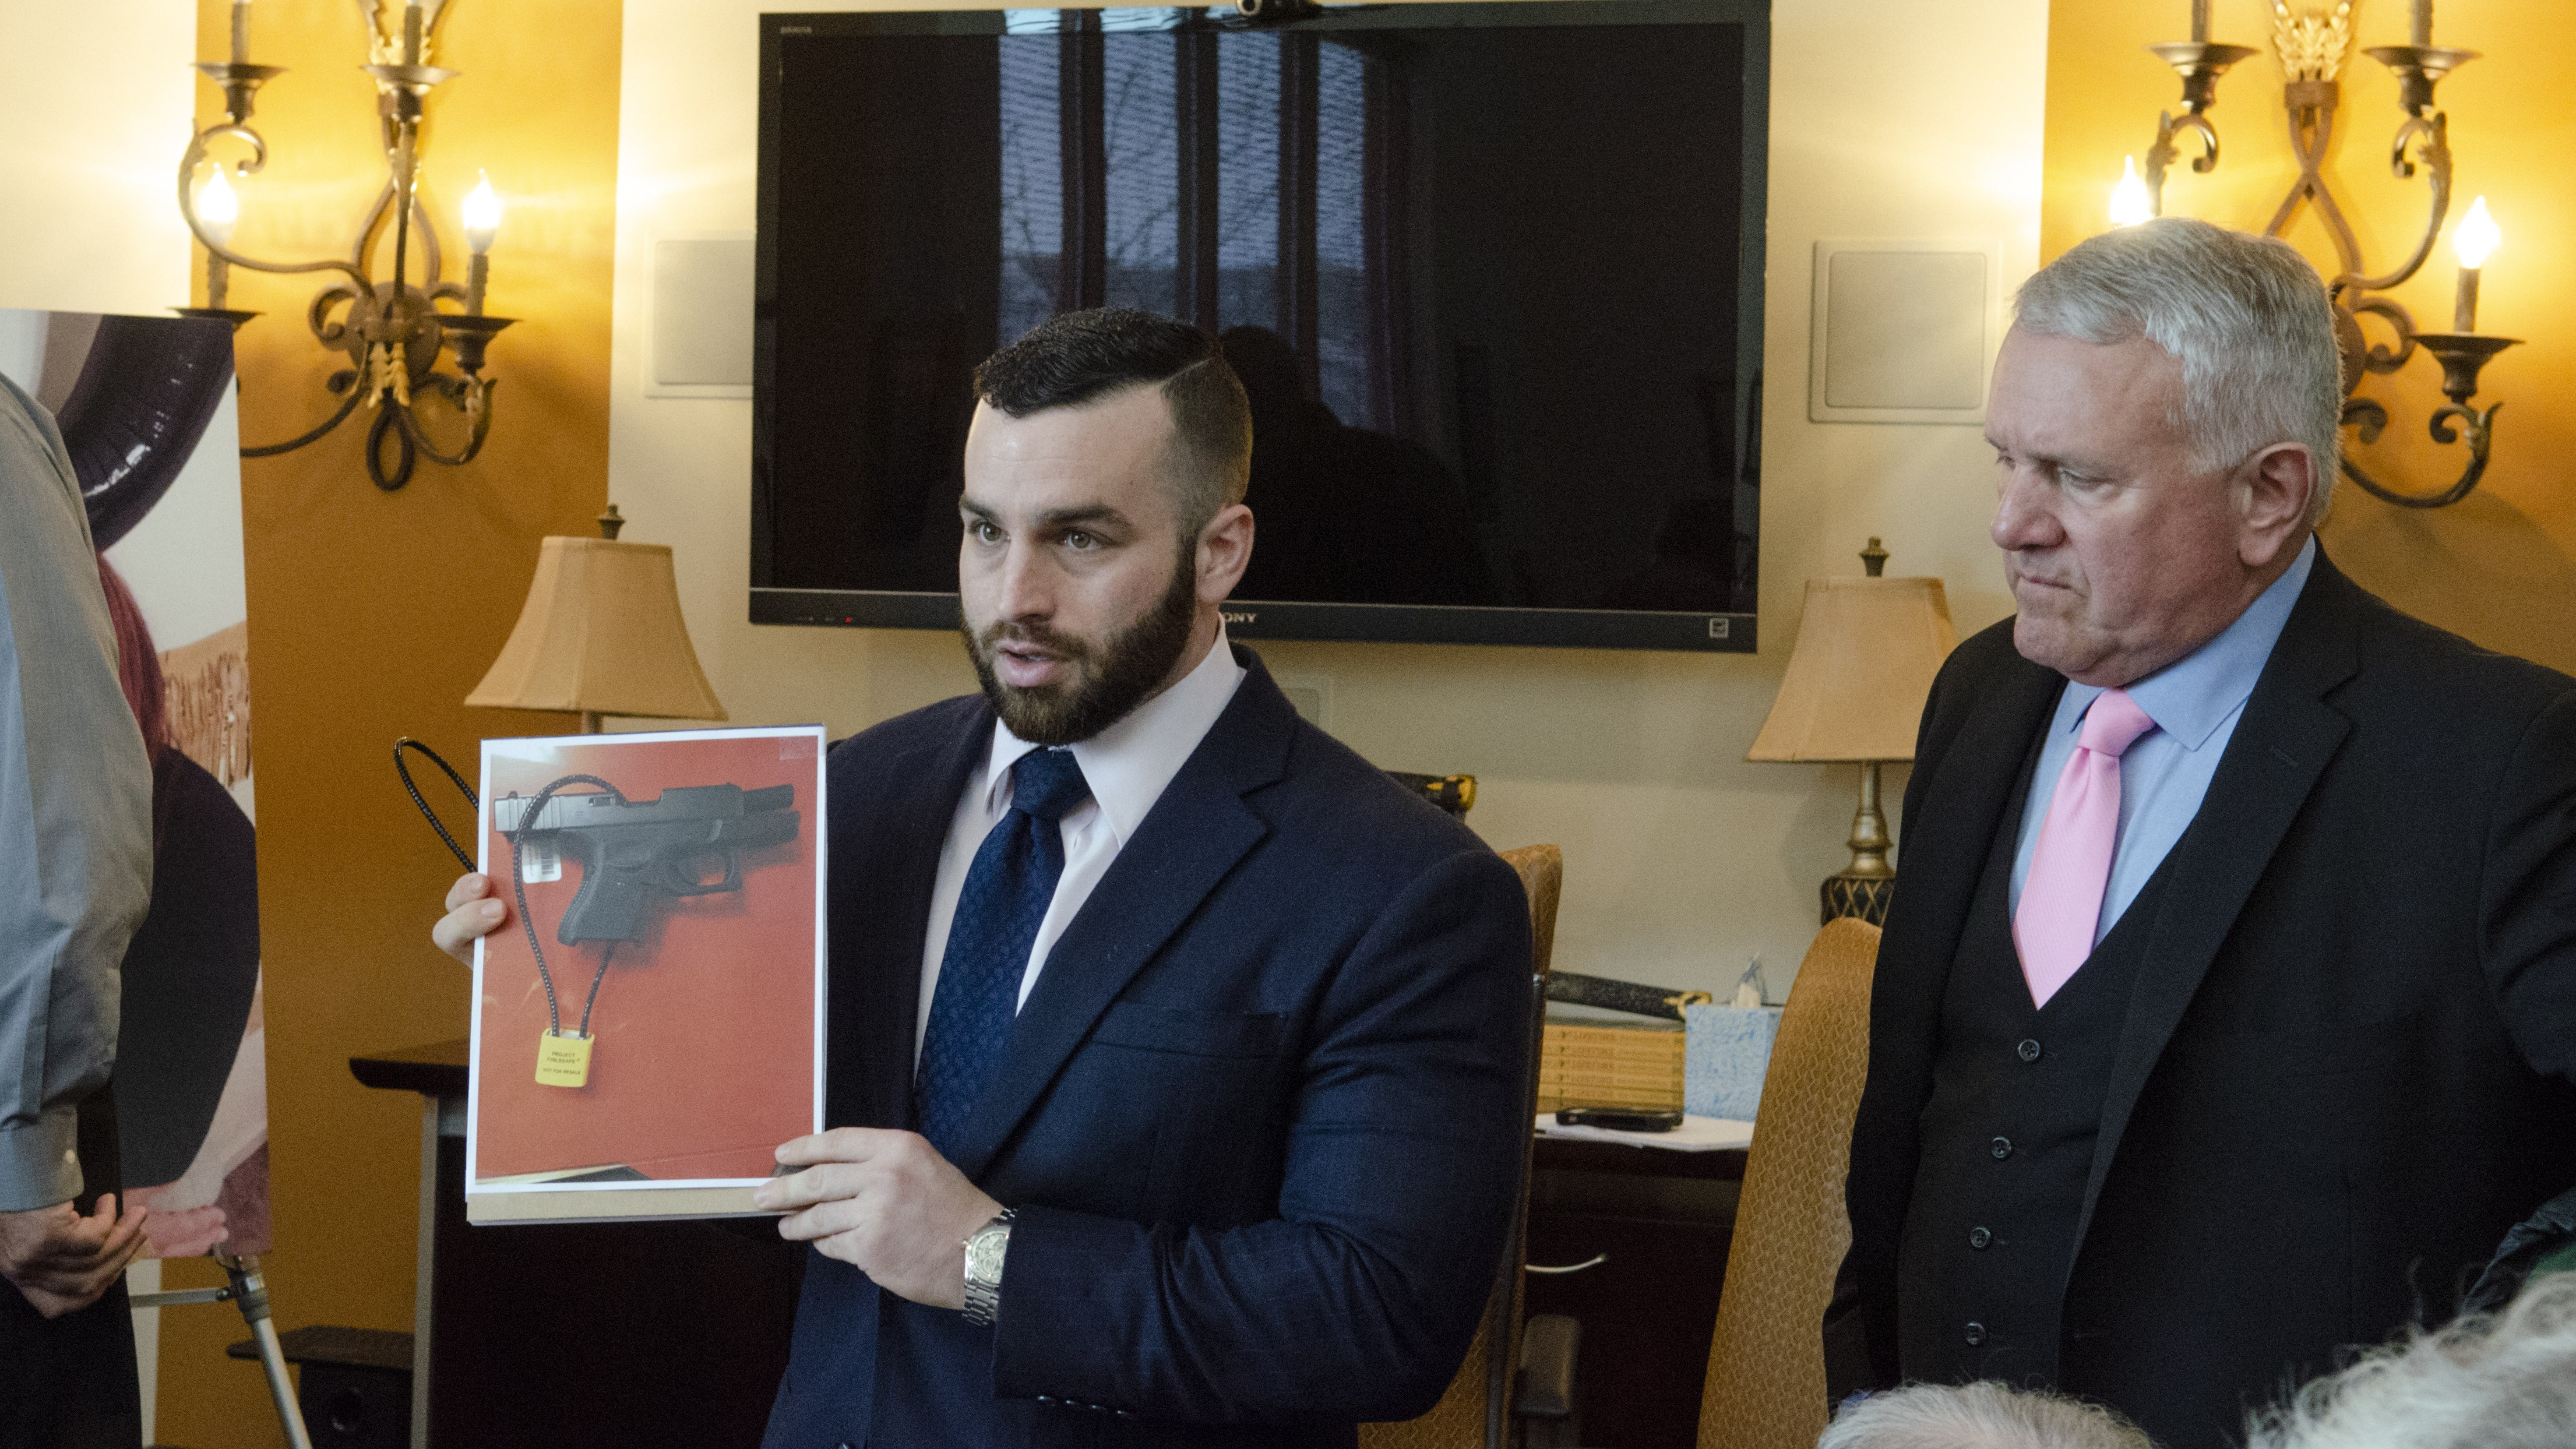 Attorney Oliver Barry shows a photo of a gun lock that might have saved Kelly Ann McDowell's life, as attorney Paul D'Amato looks on.